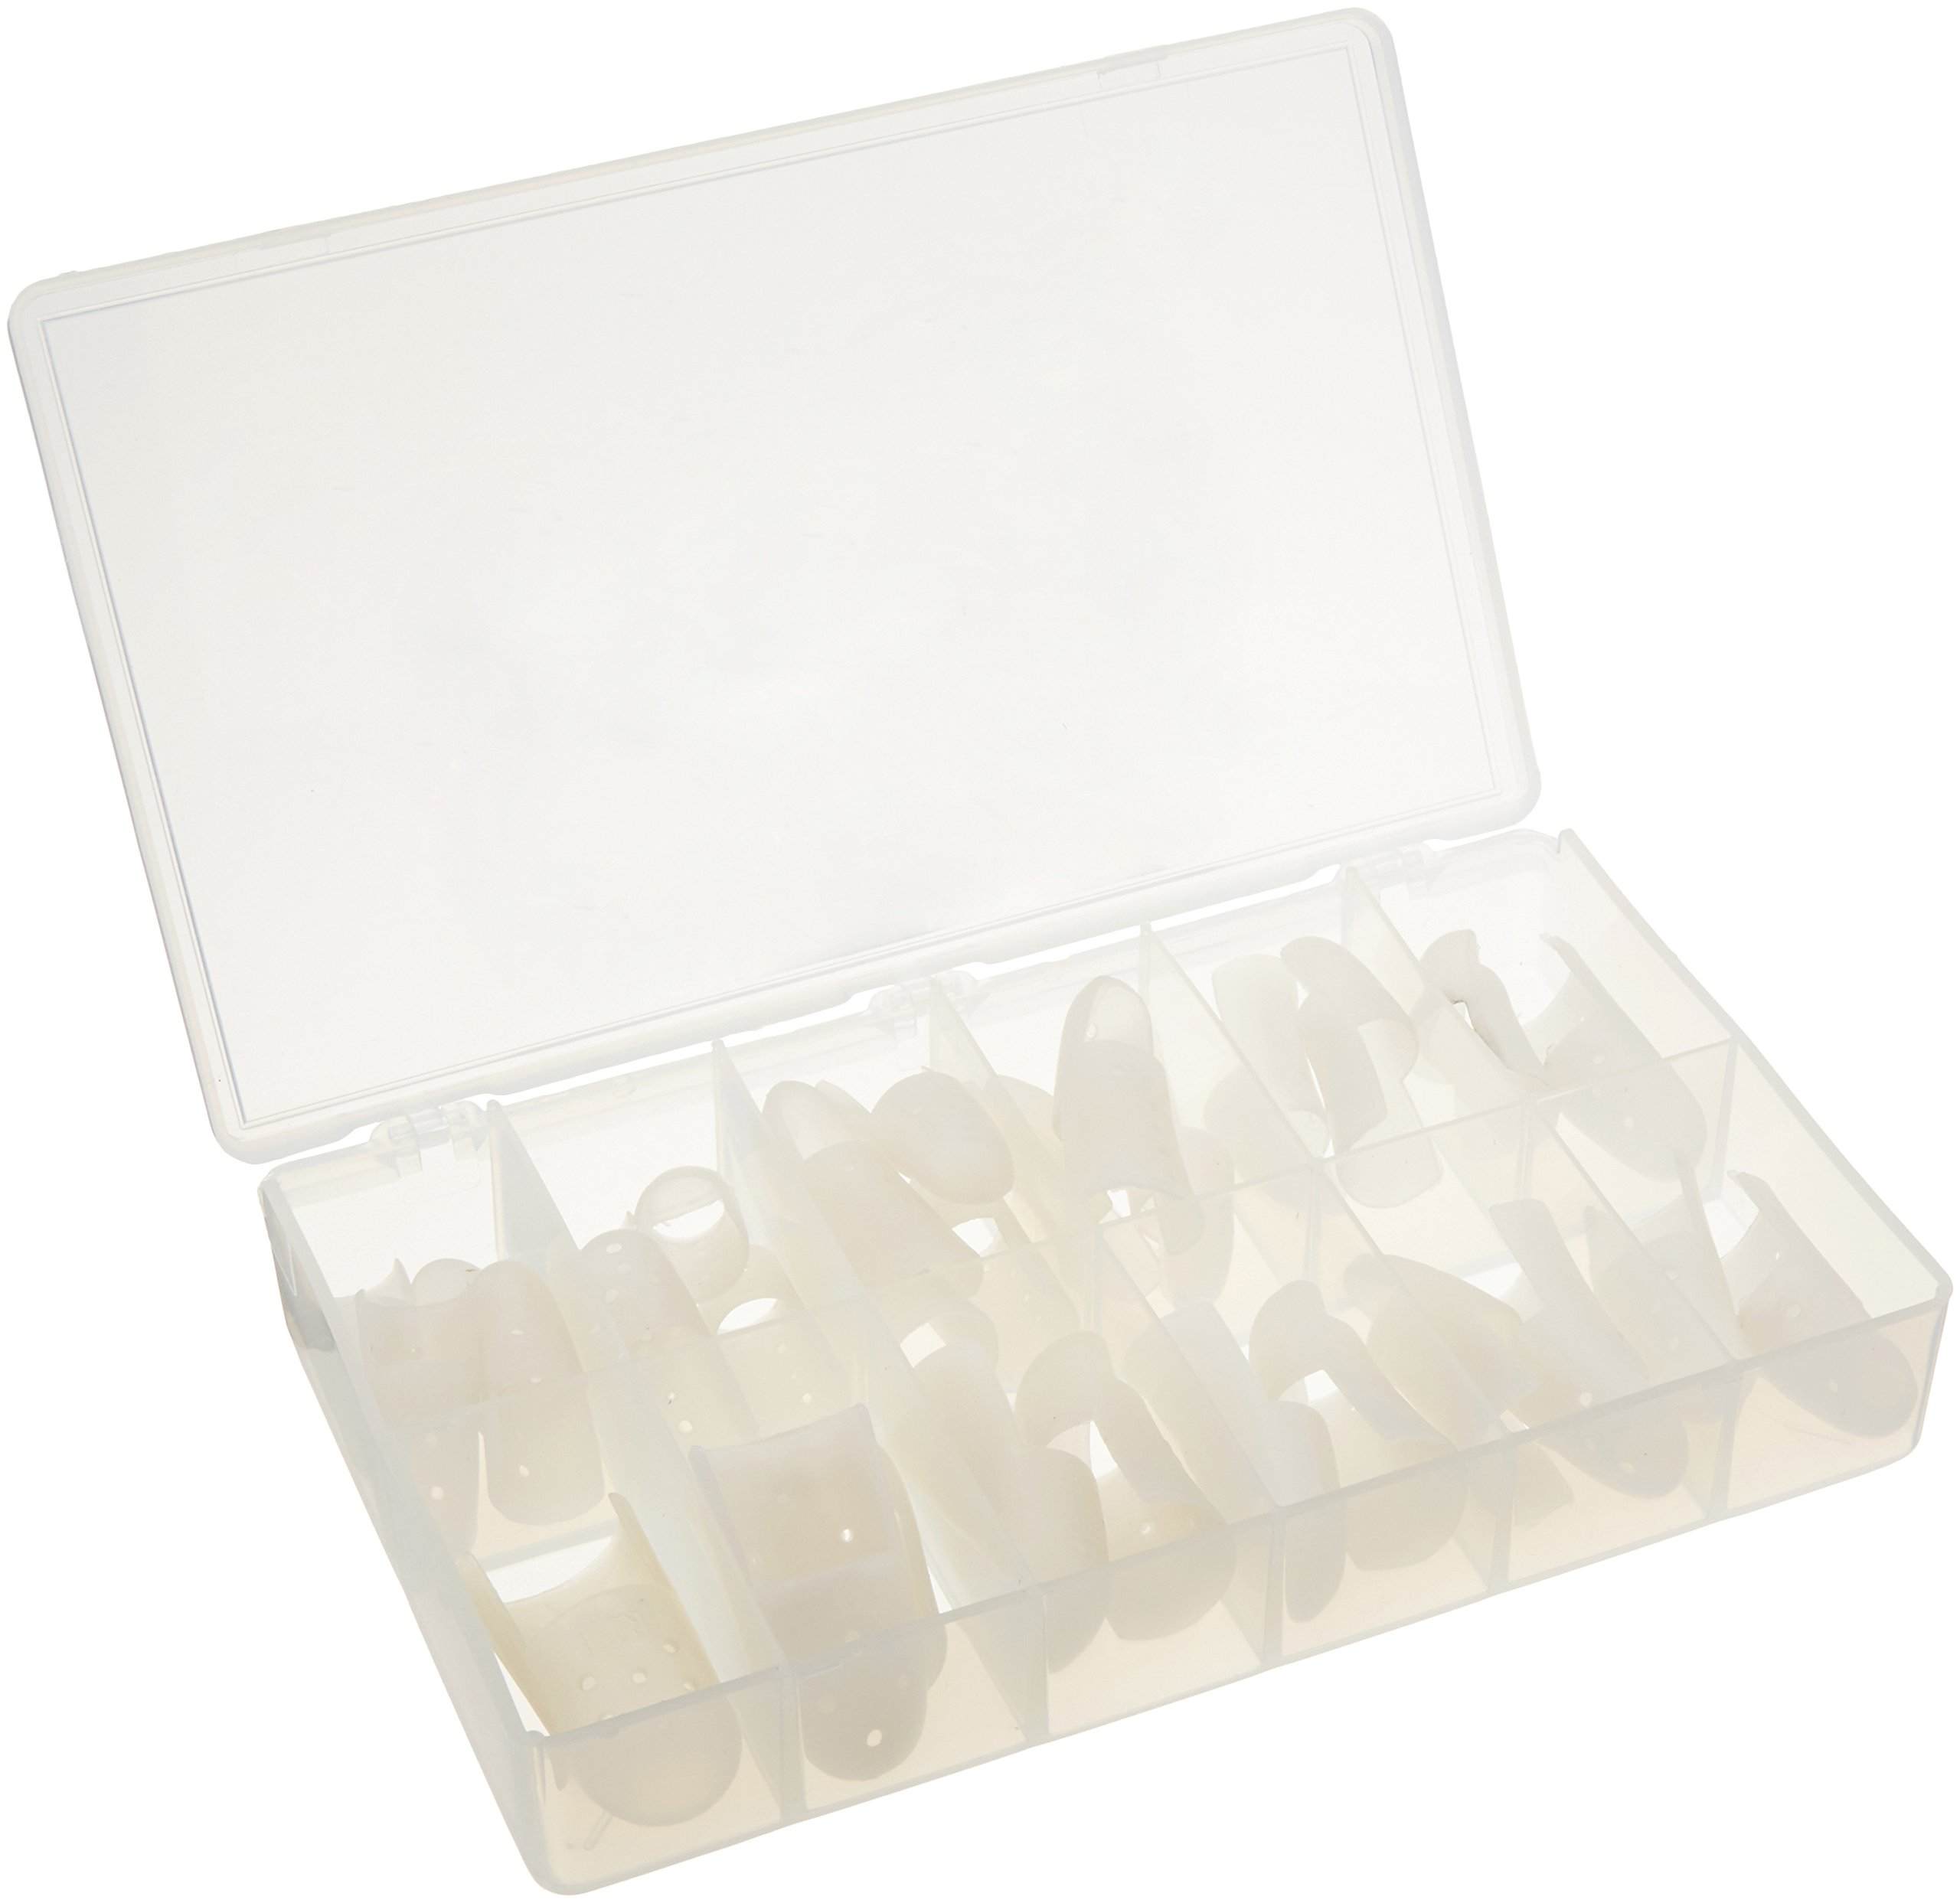 Rolyan STAX Finger Splints, Box of 30 Assorted Sample Sizes by Rolyan